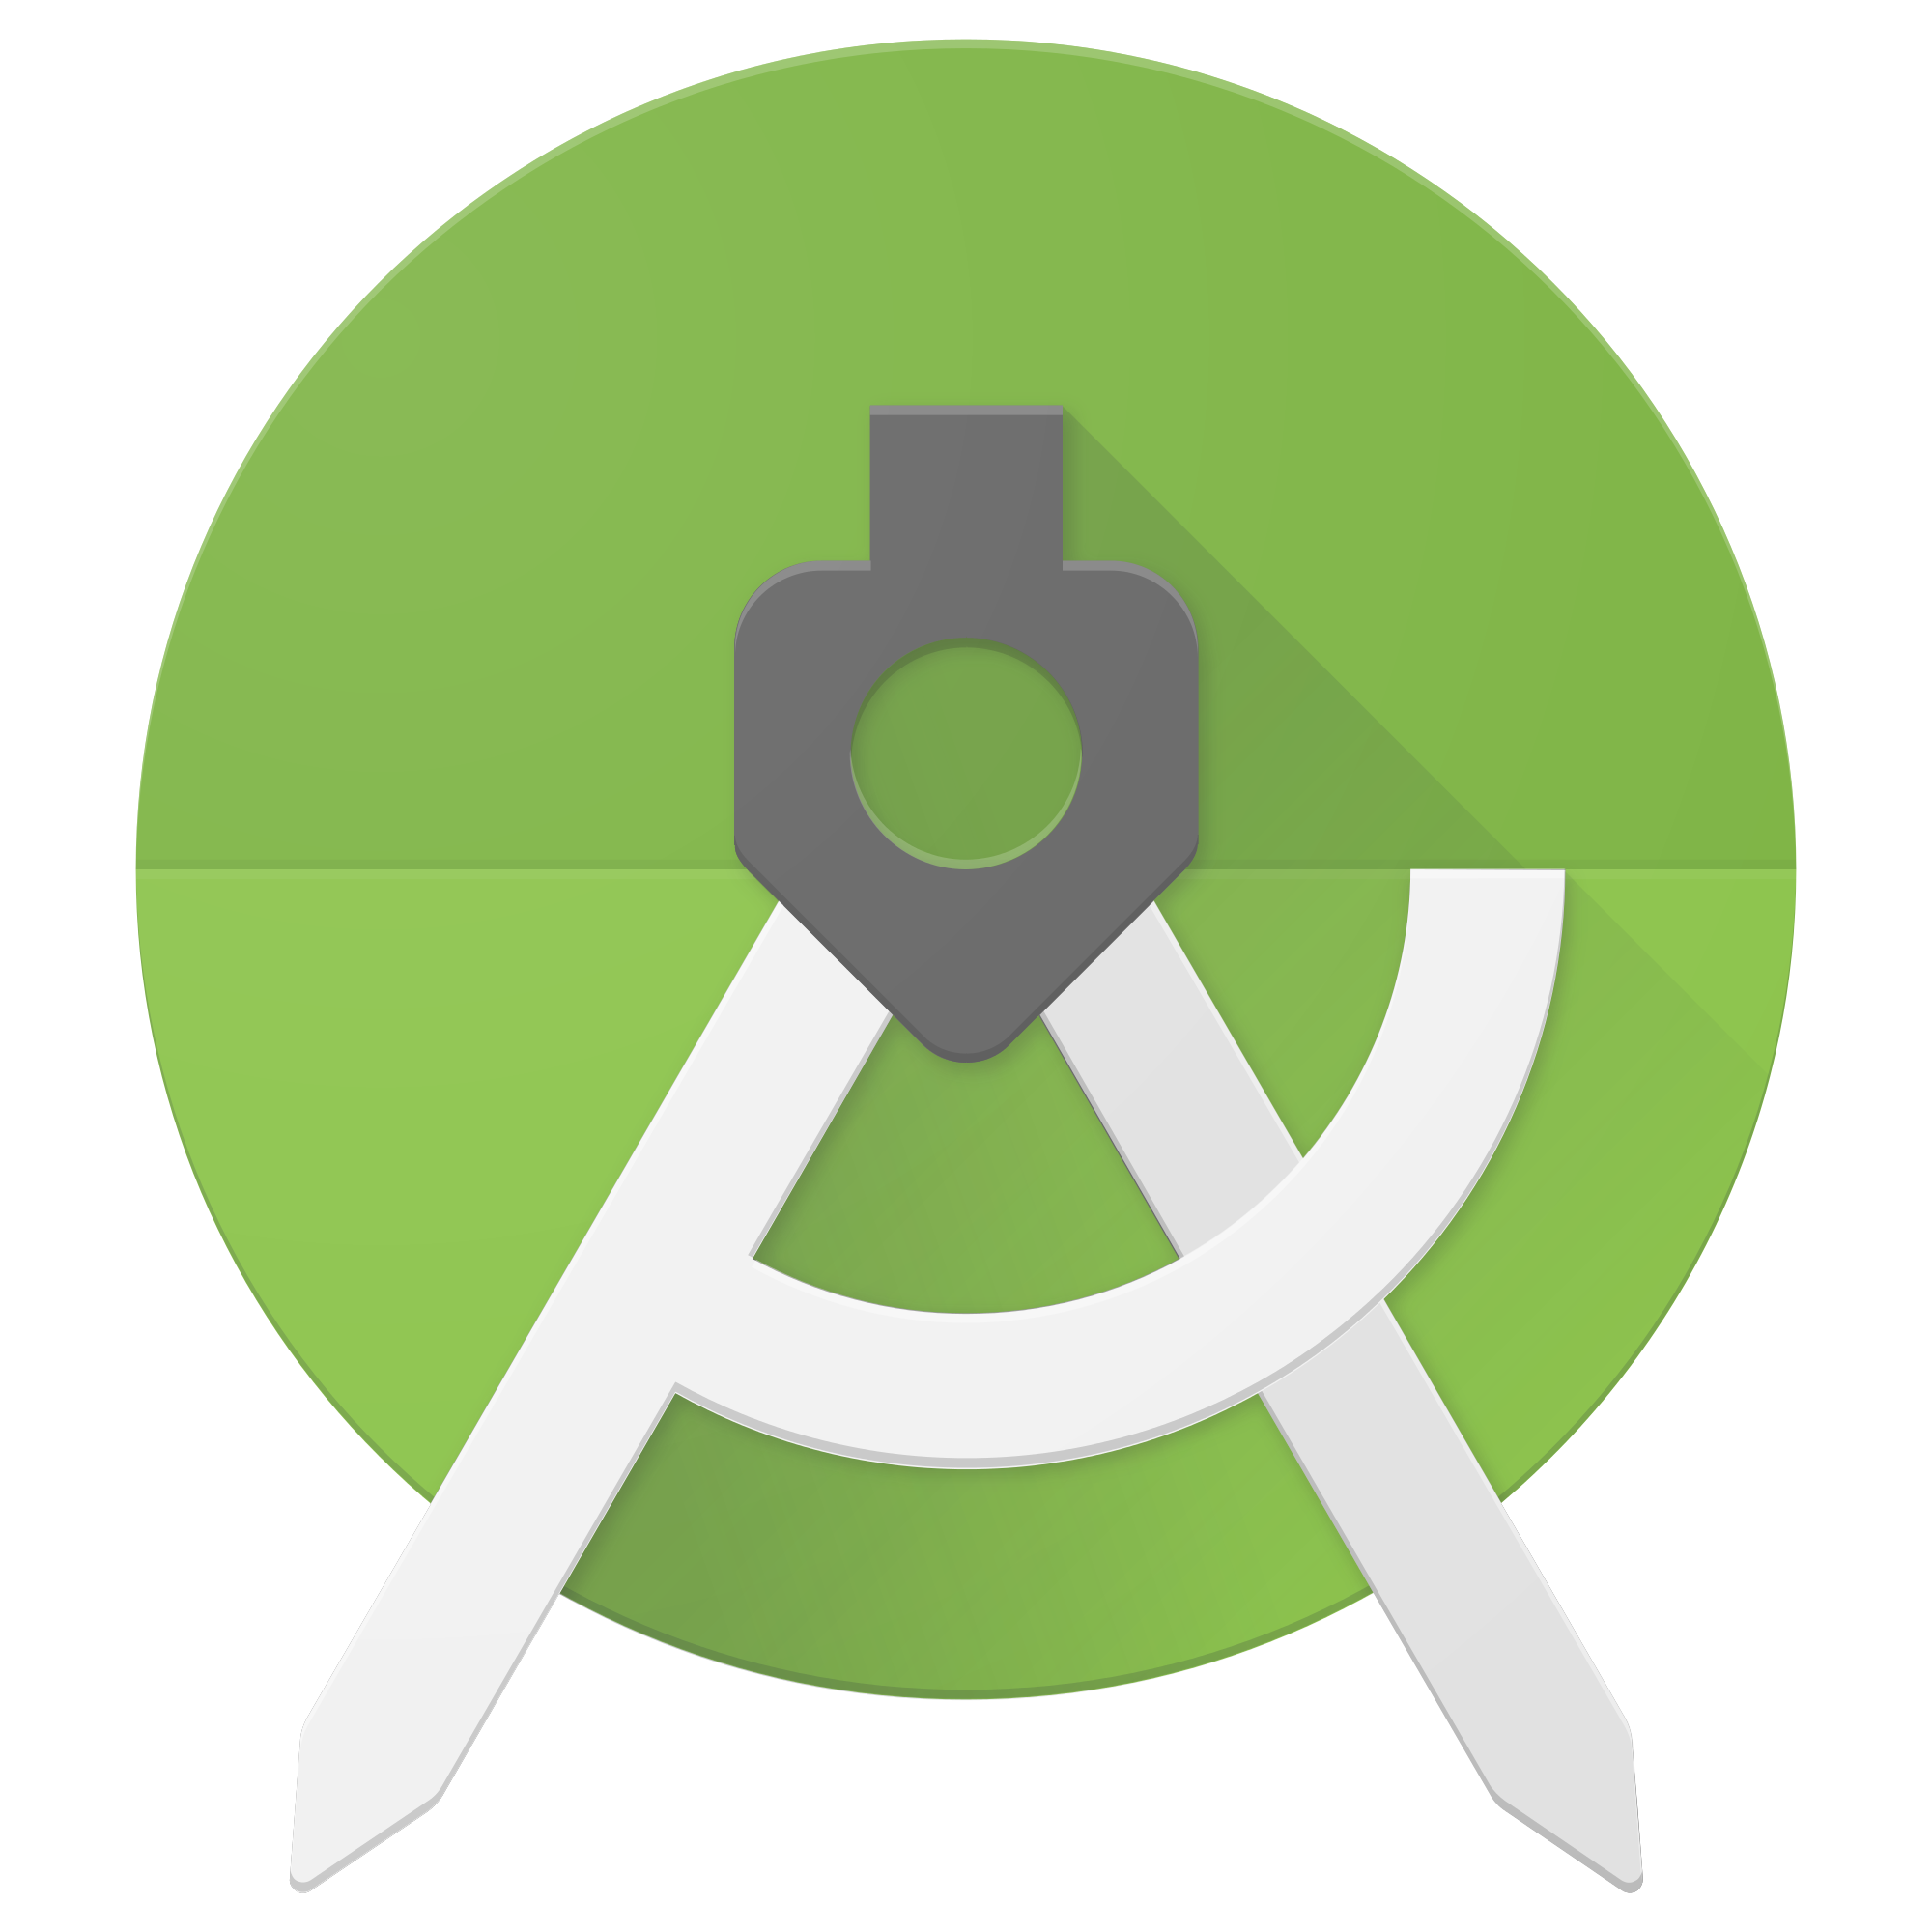 android studio logo png